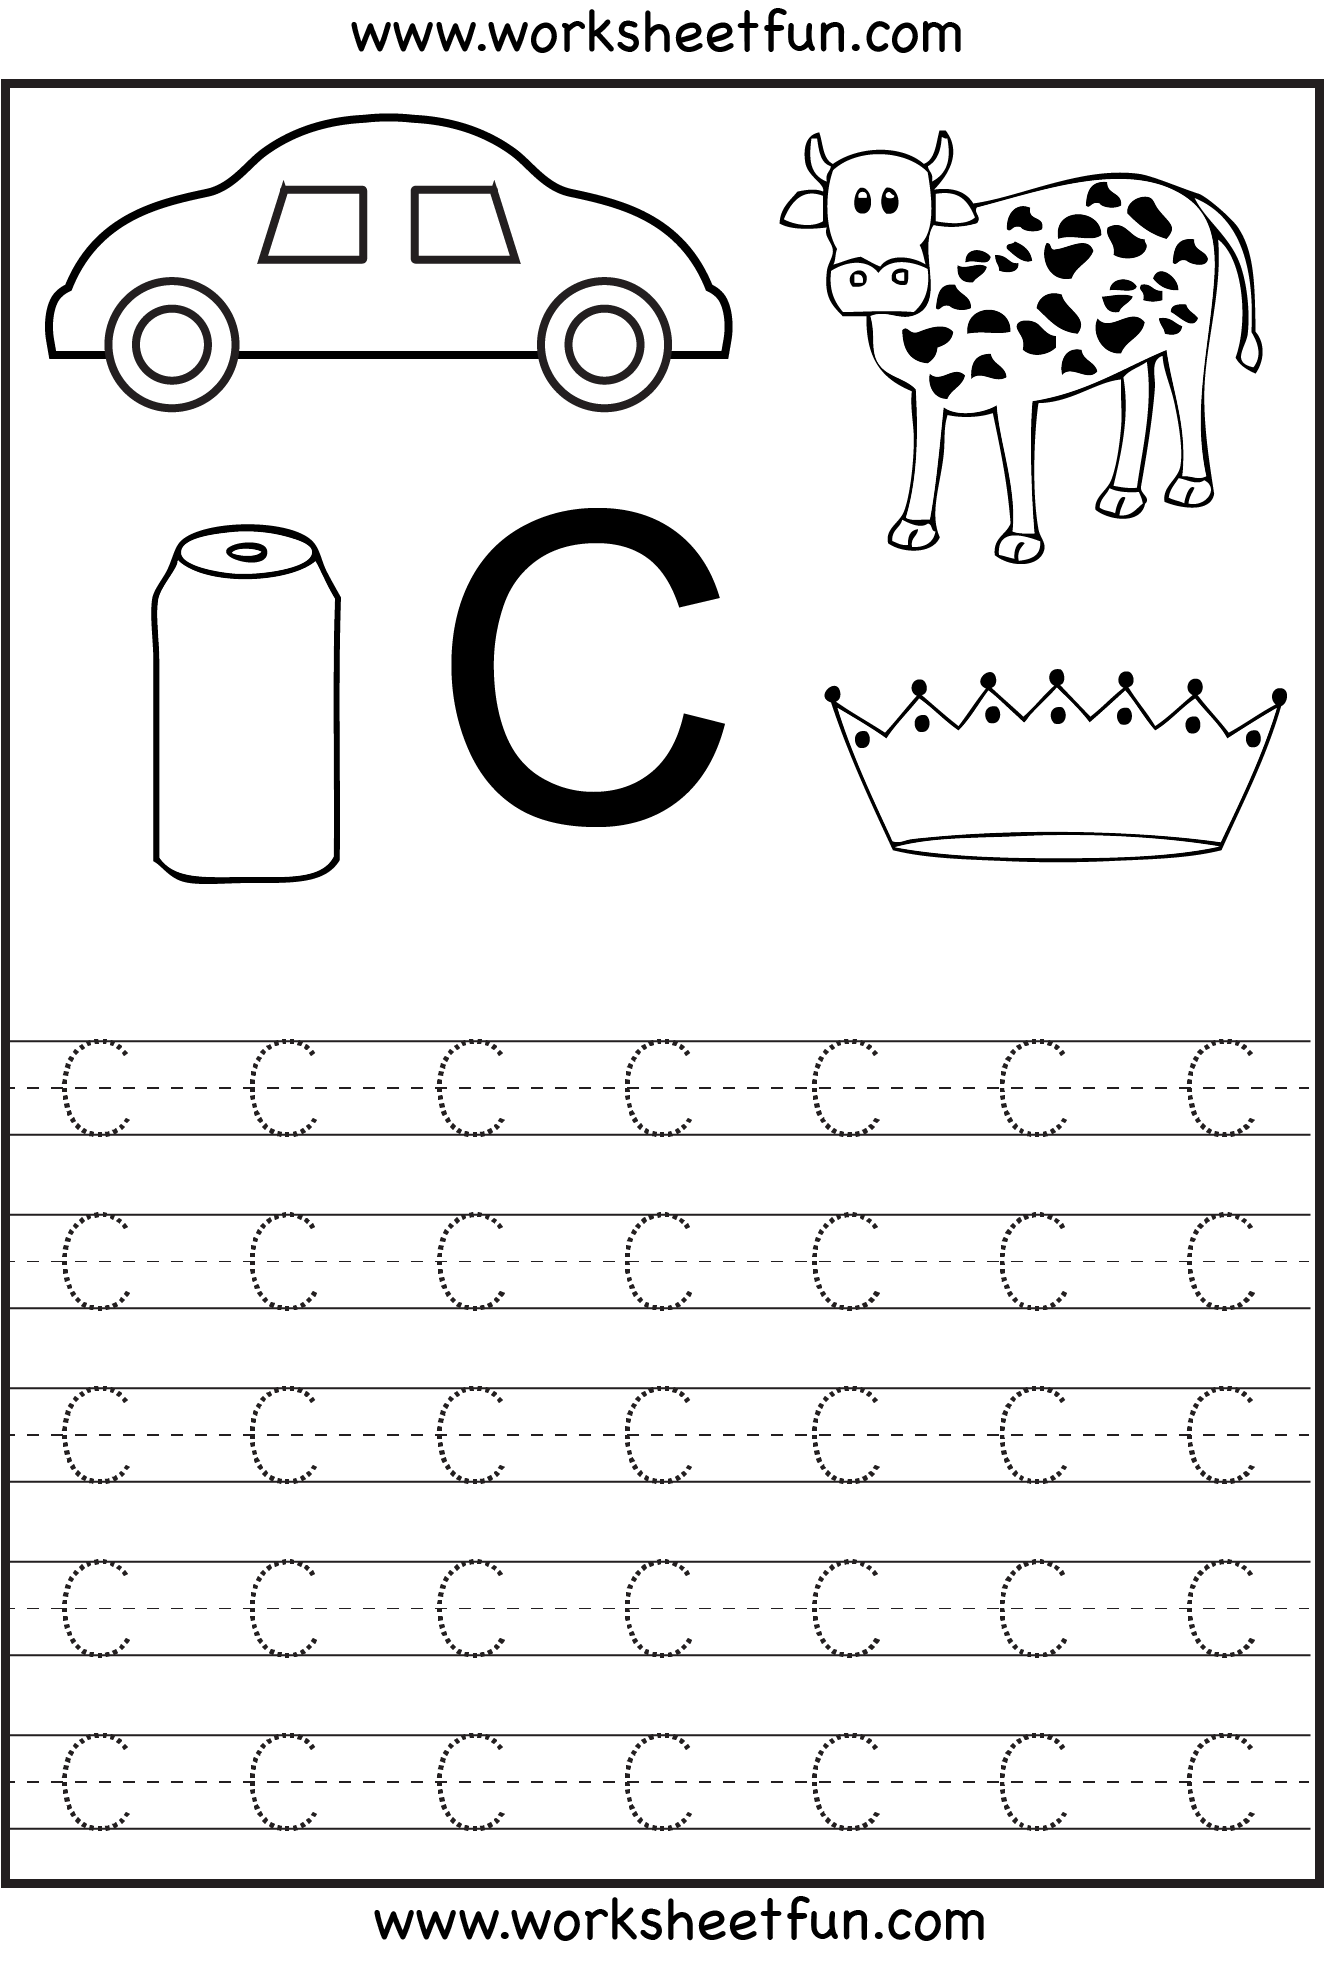 Worksheet Letter Tracing For Toddlers worksheet letter tracing for toddlers mikyu free c worksheets b preschool sponsorship an